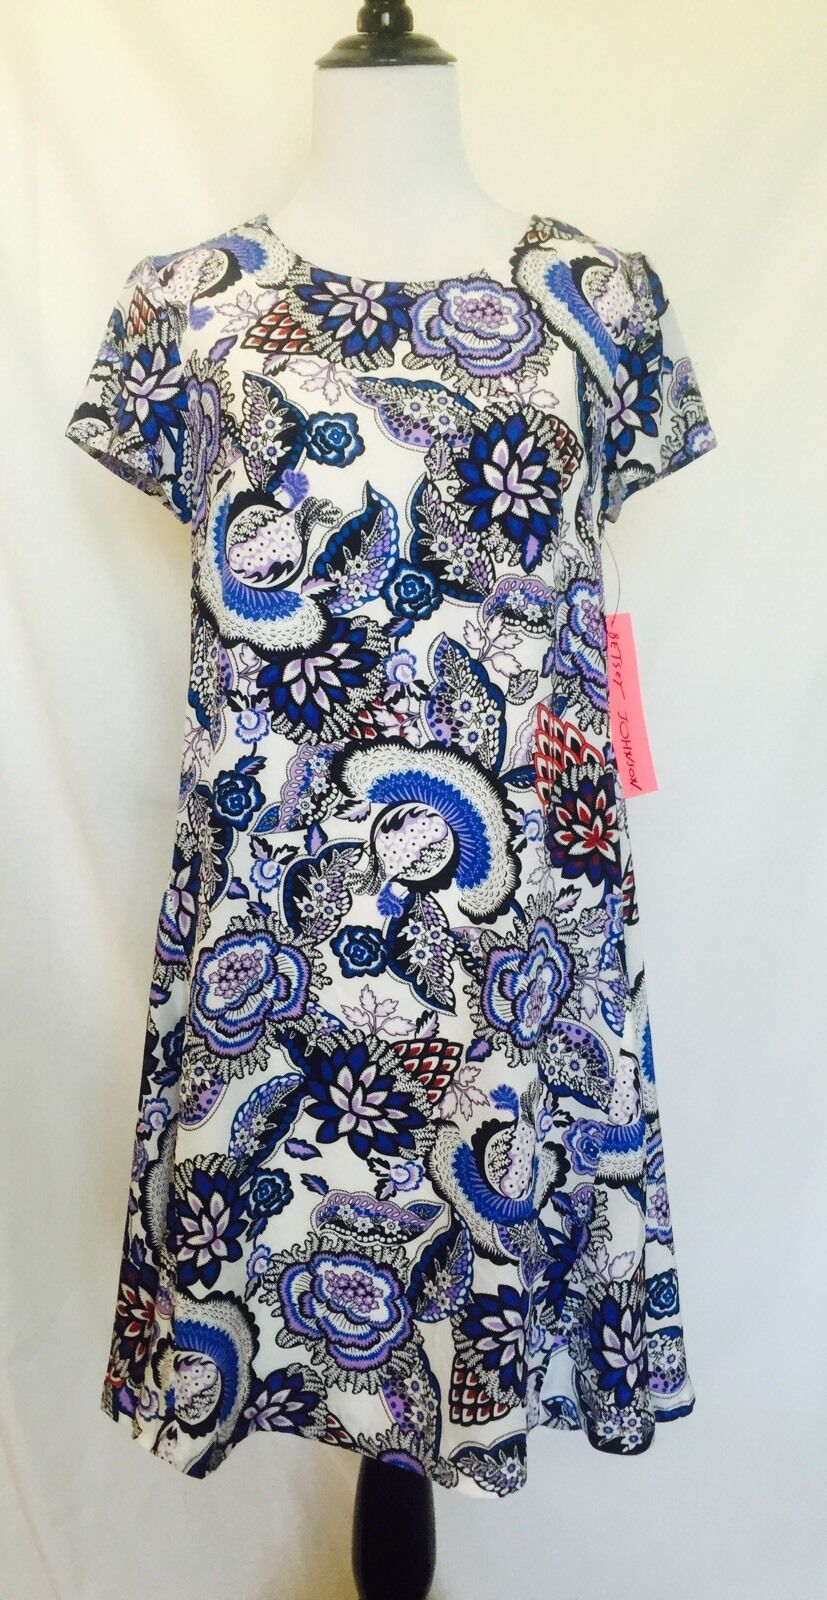 Betsey Johnson Flowered Print bluee & Red Dress Size 2 NWT Retail  Price